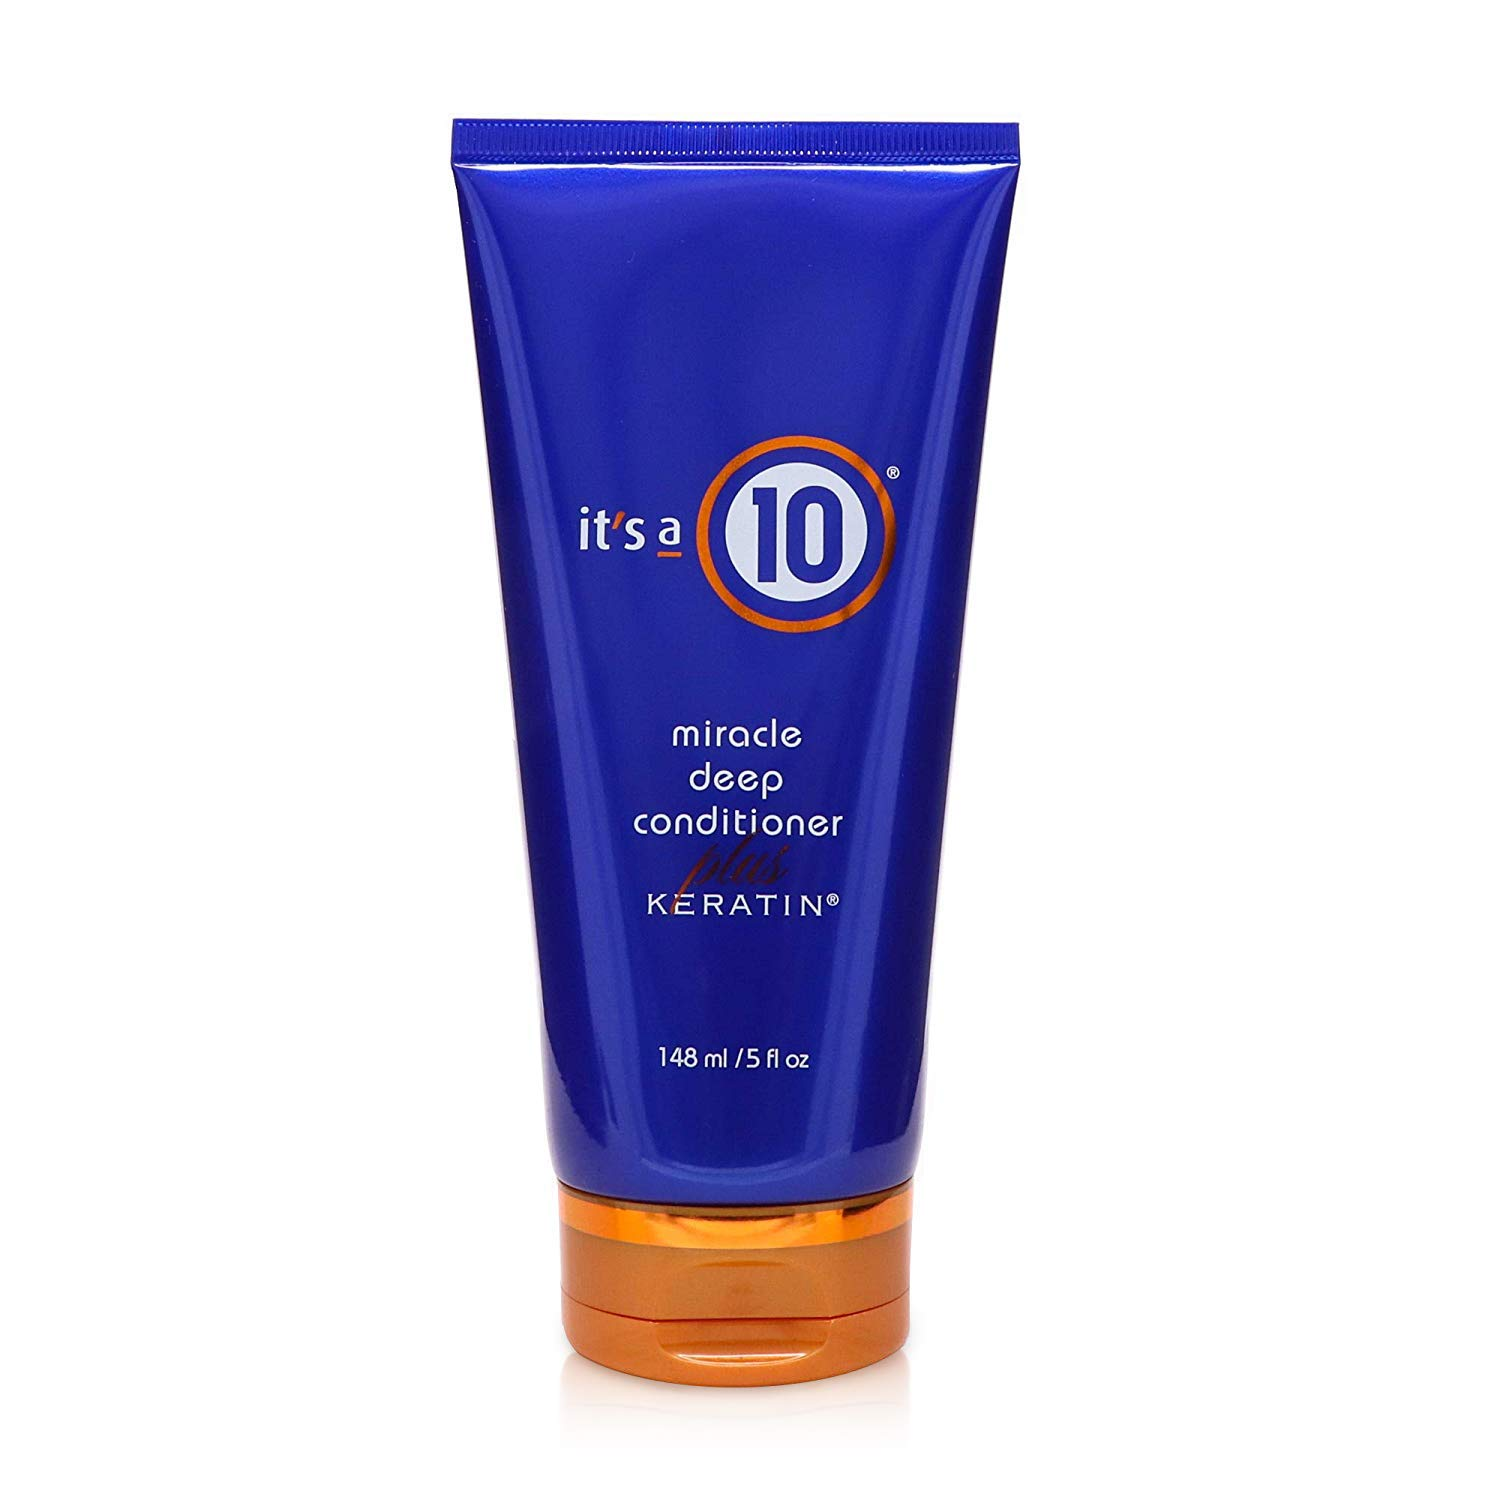 It's a 10 Haircare Miracle Deep Conditioner plus Keratin, 5 fl. oz. (Pack of 1)